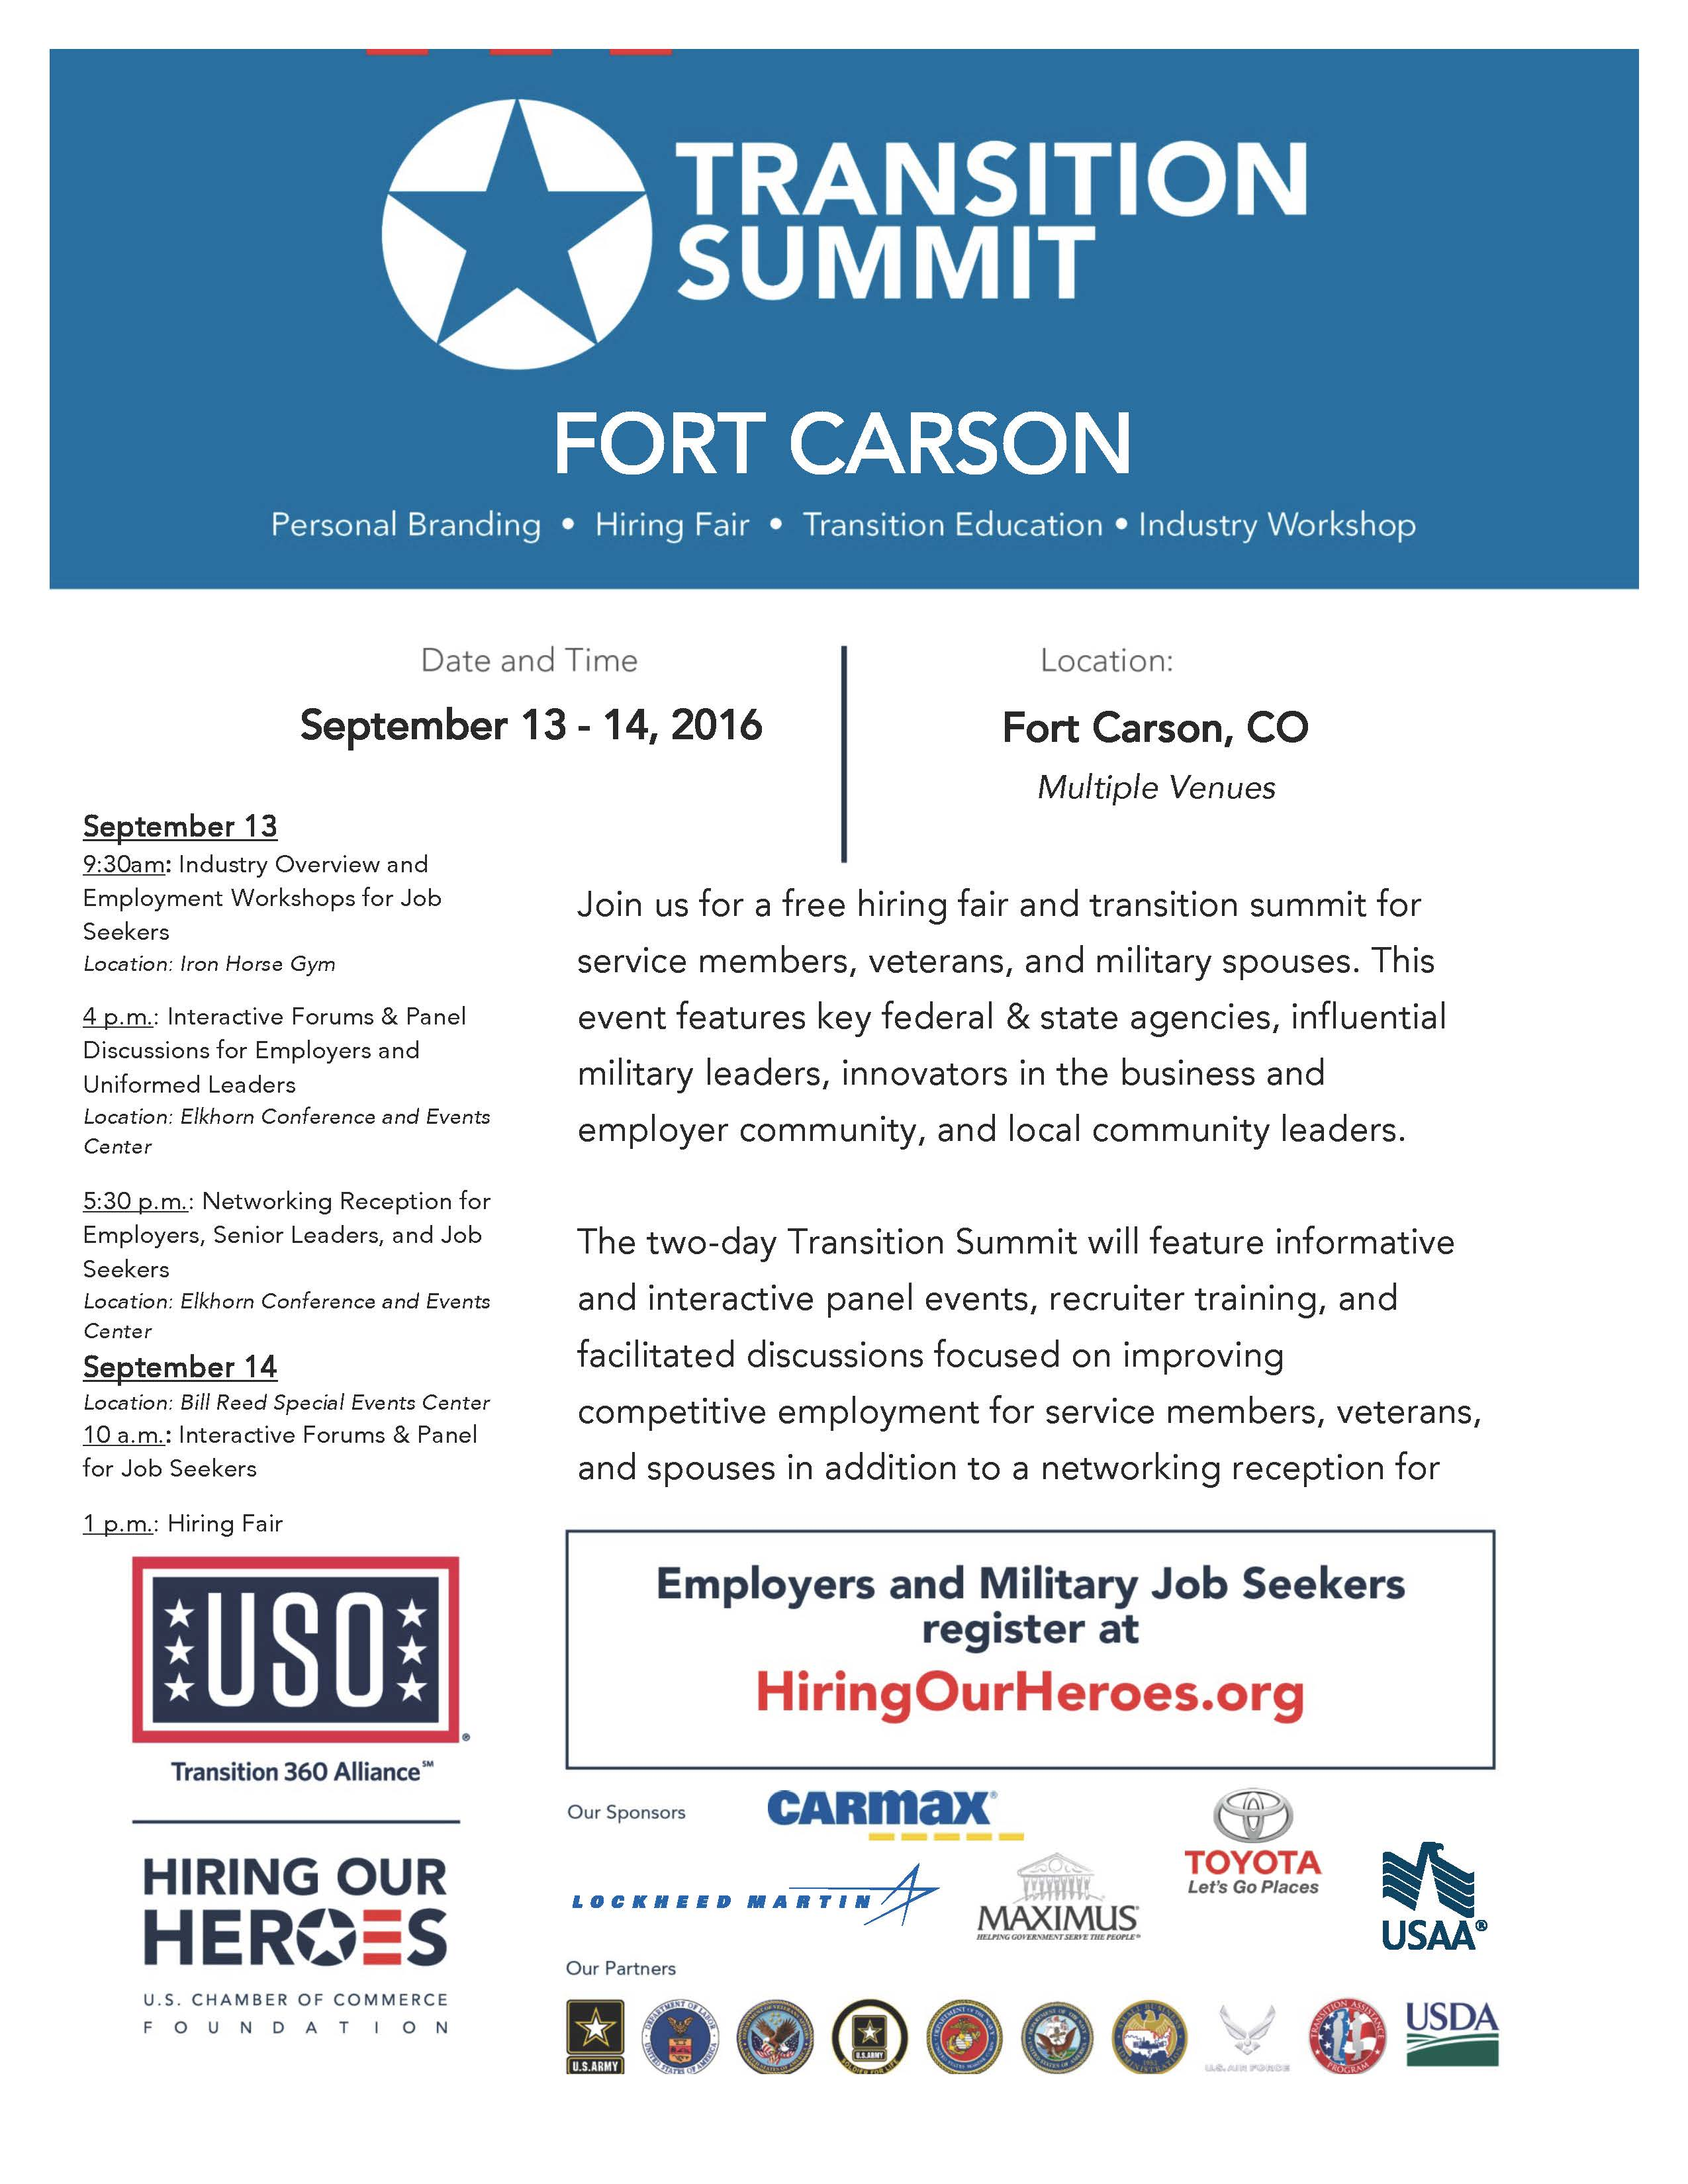 Fort Carson hosts Transition Summit